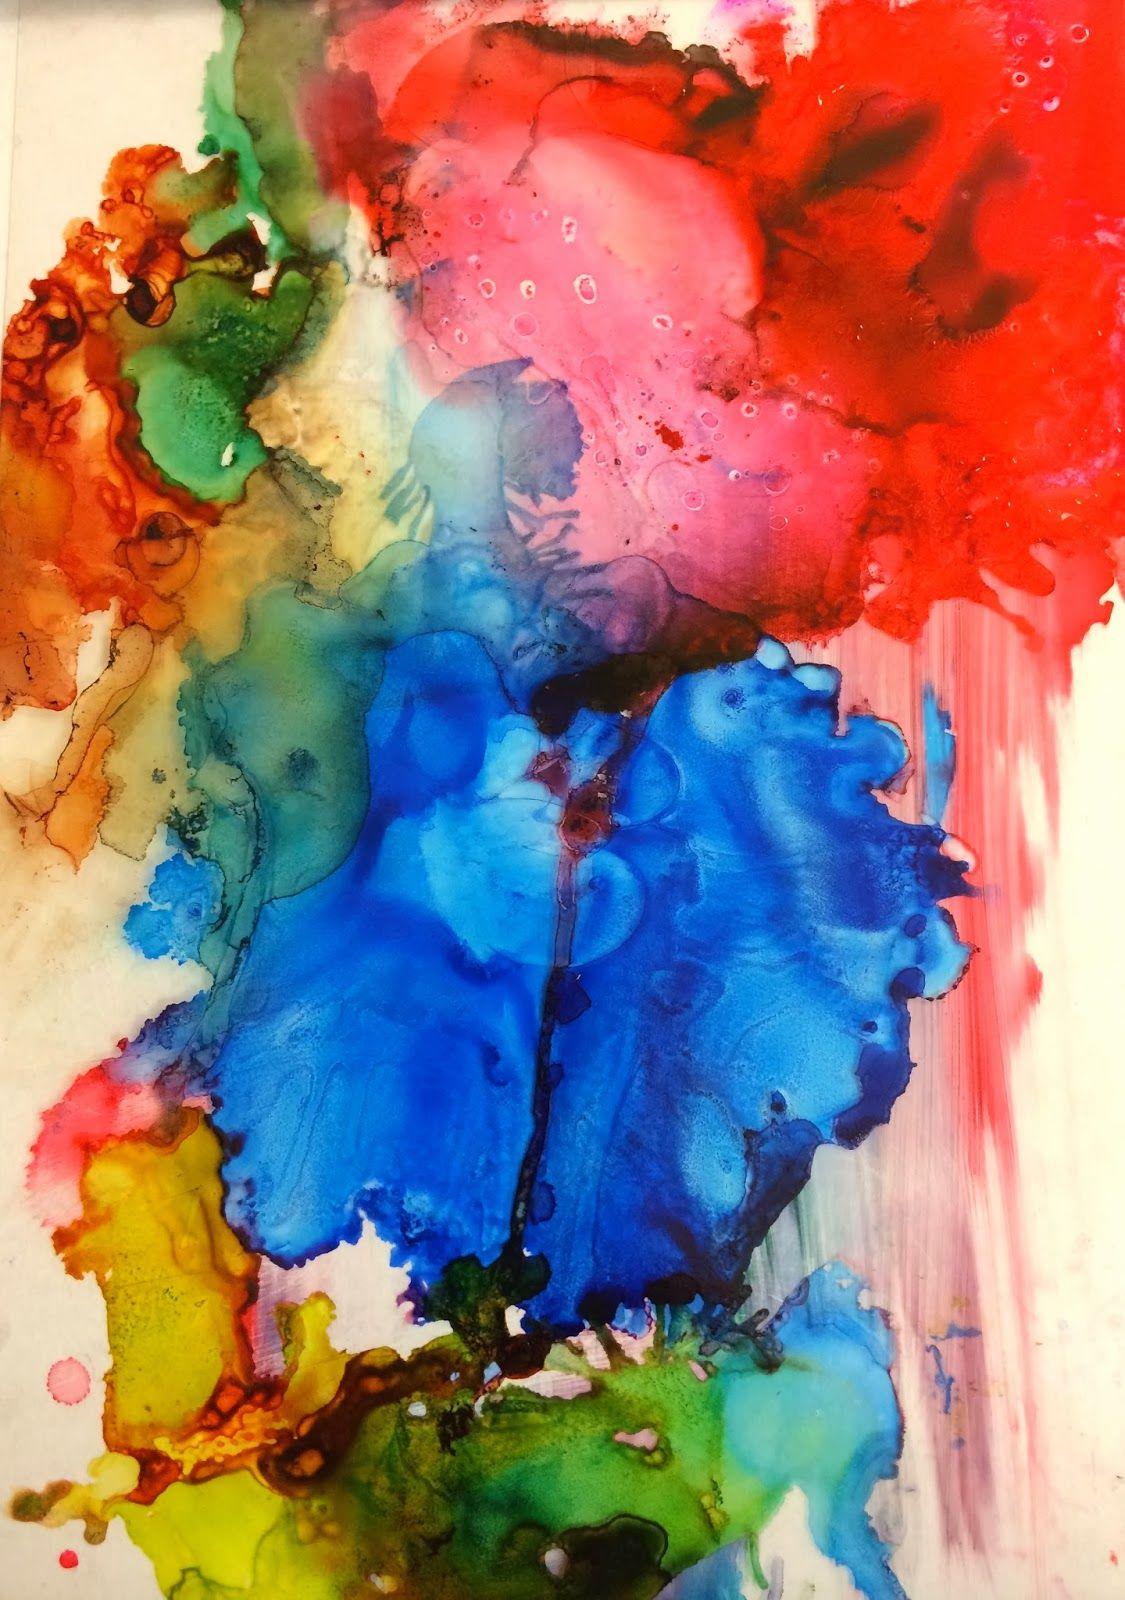 Cool Project On Abstract Composition Using Alcohol Ink And